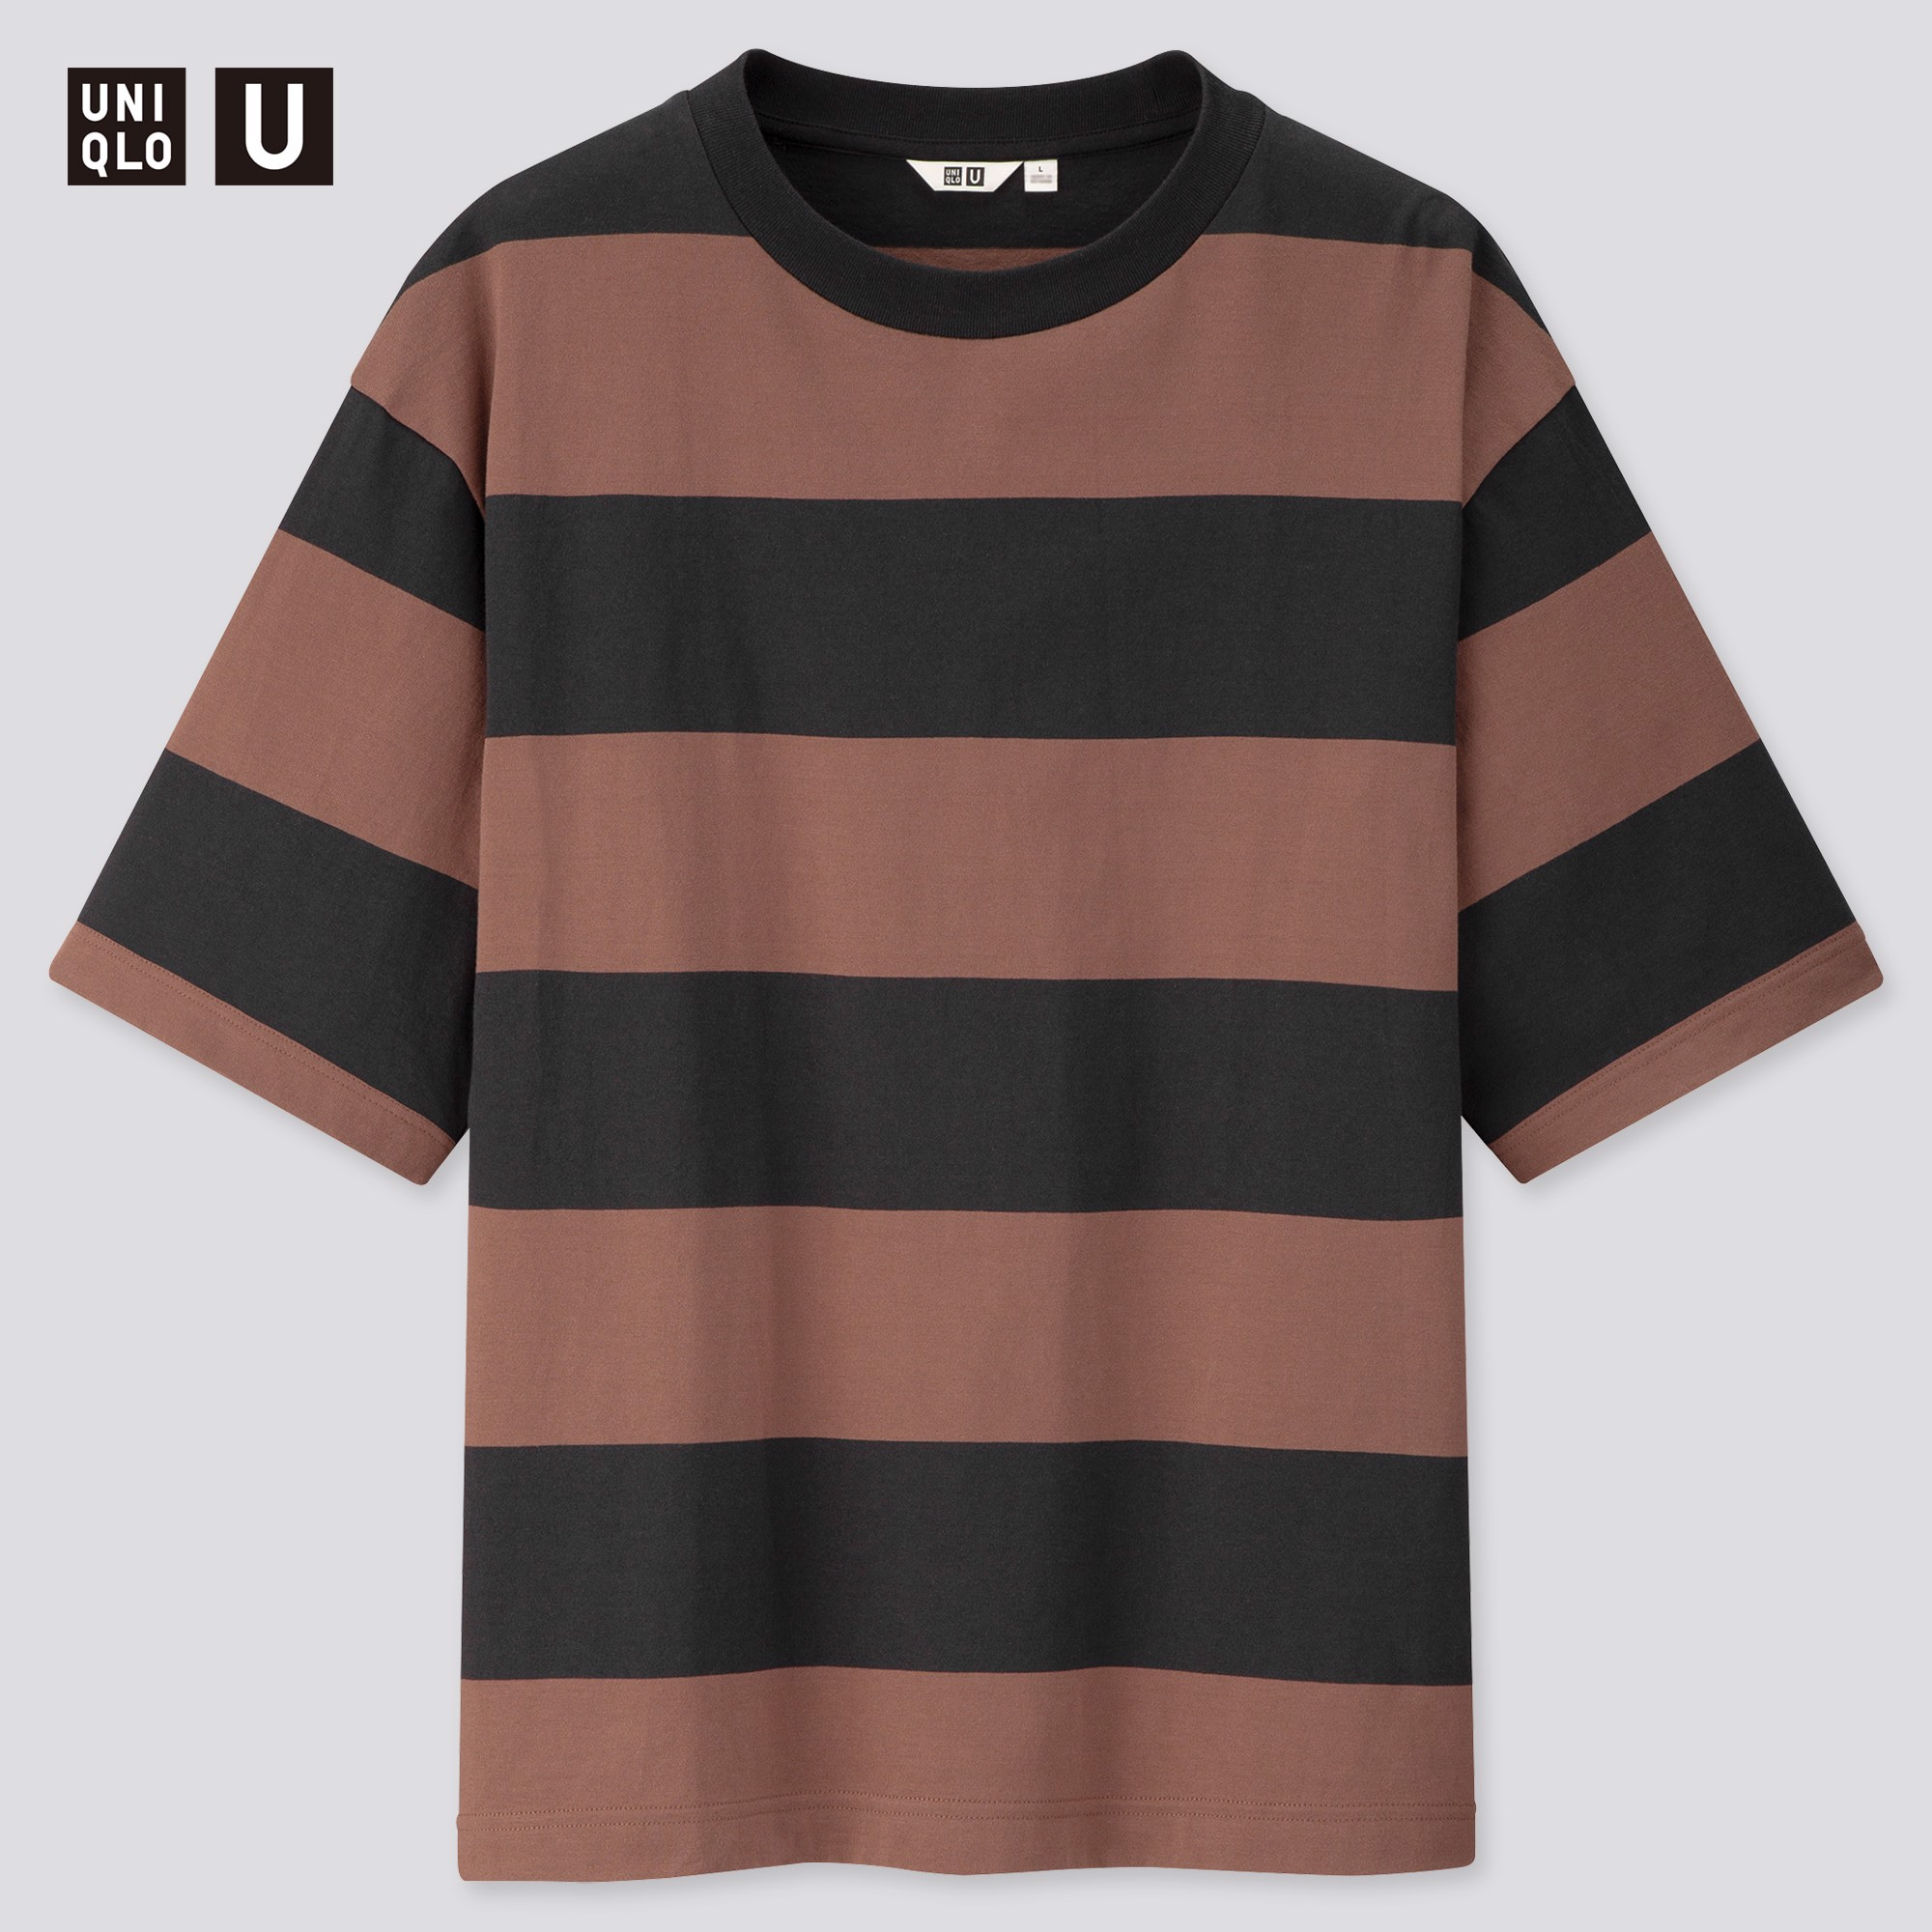 Uniqlo U Oversized Striped Crew Neck 'Black'